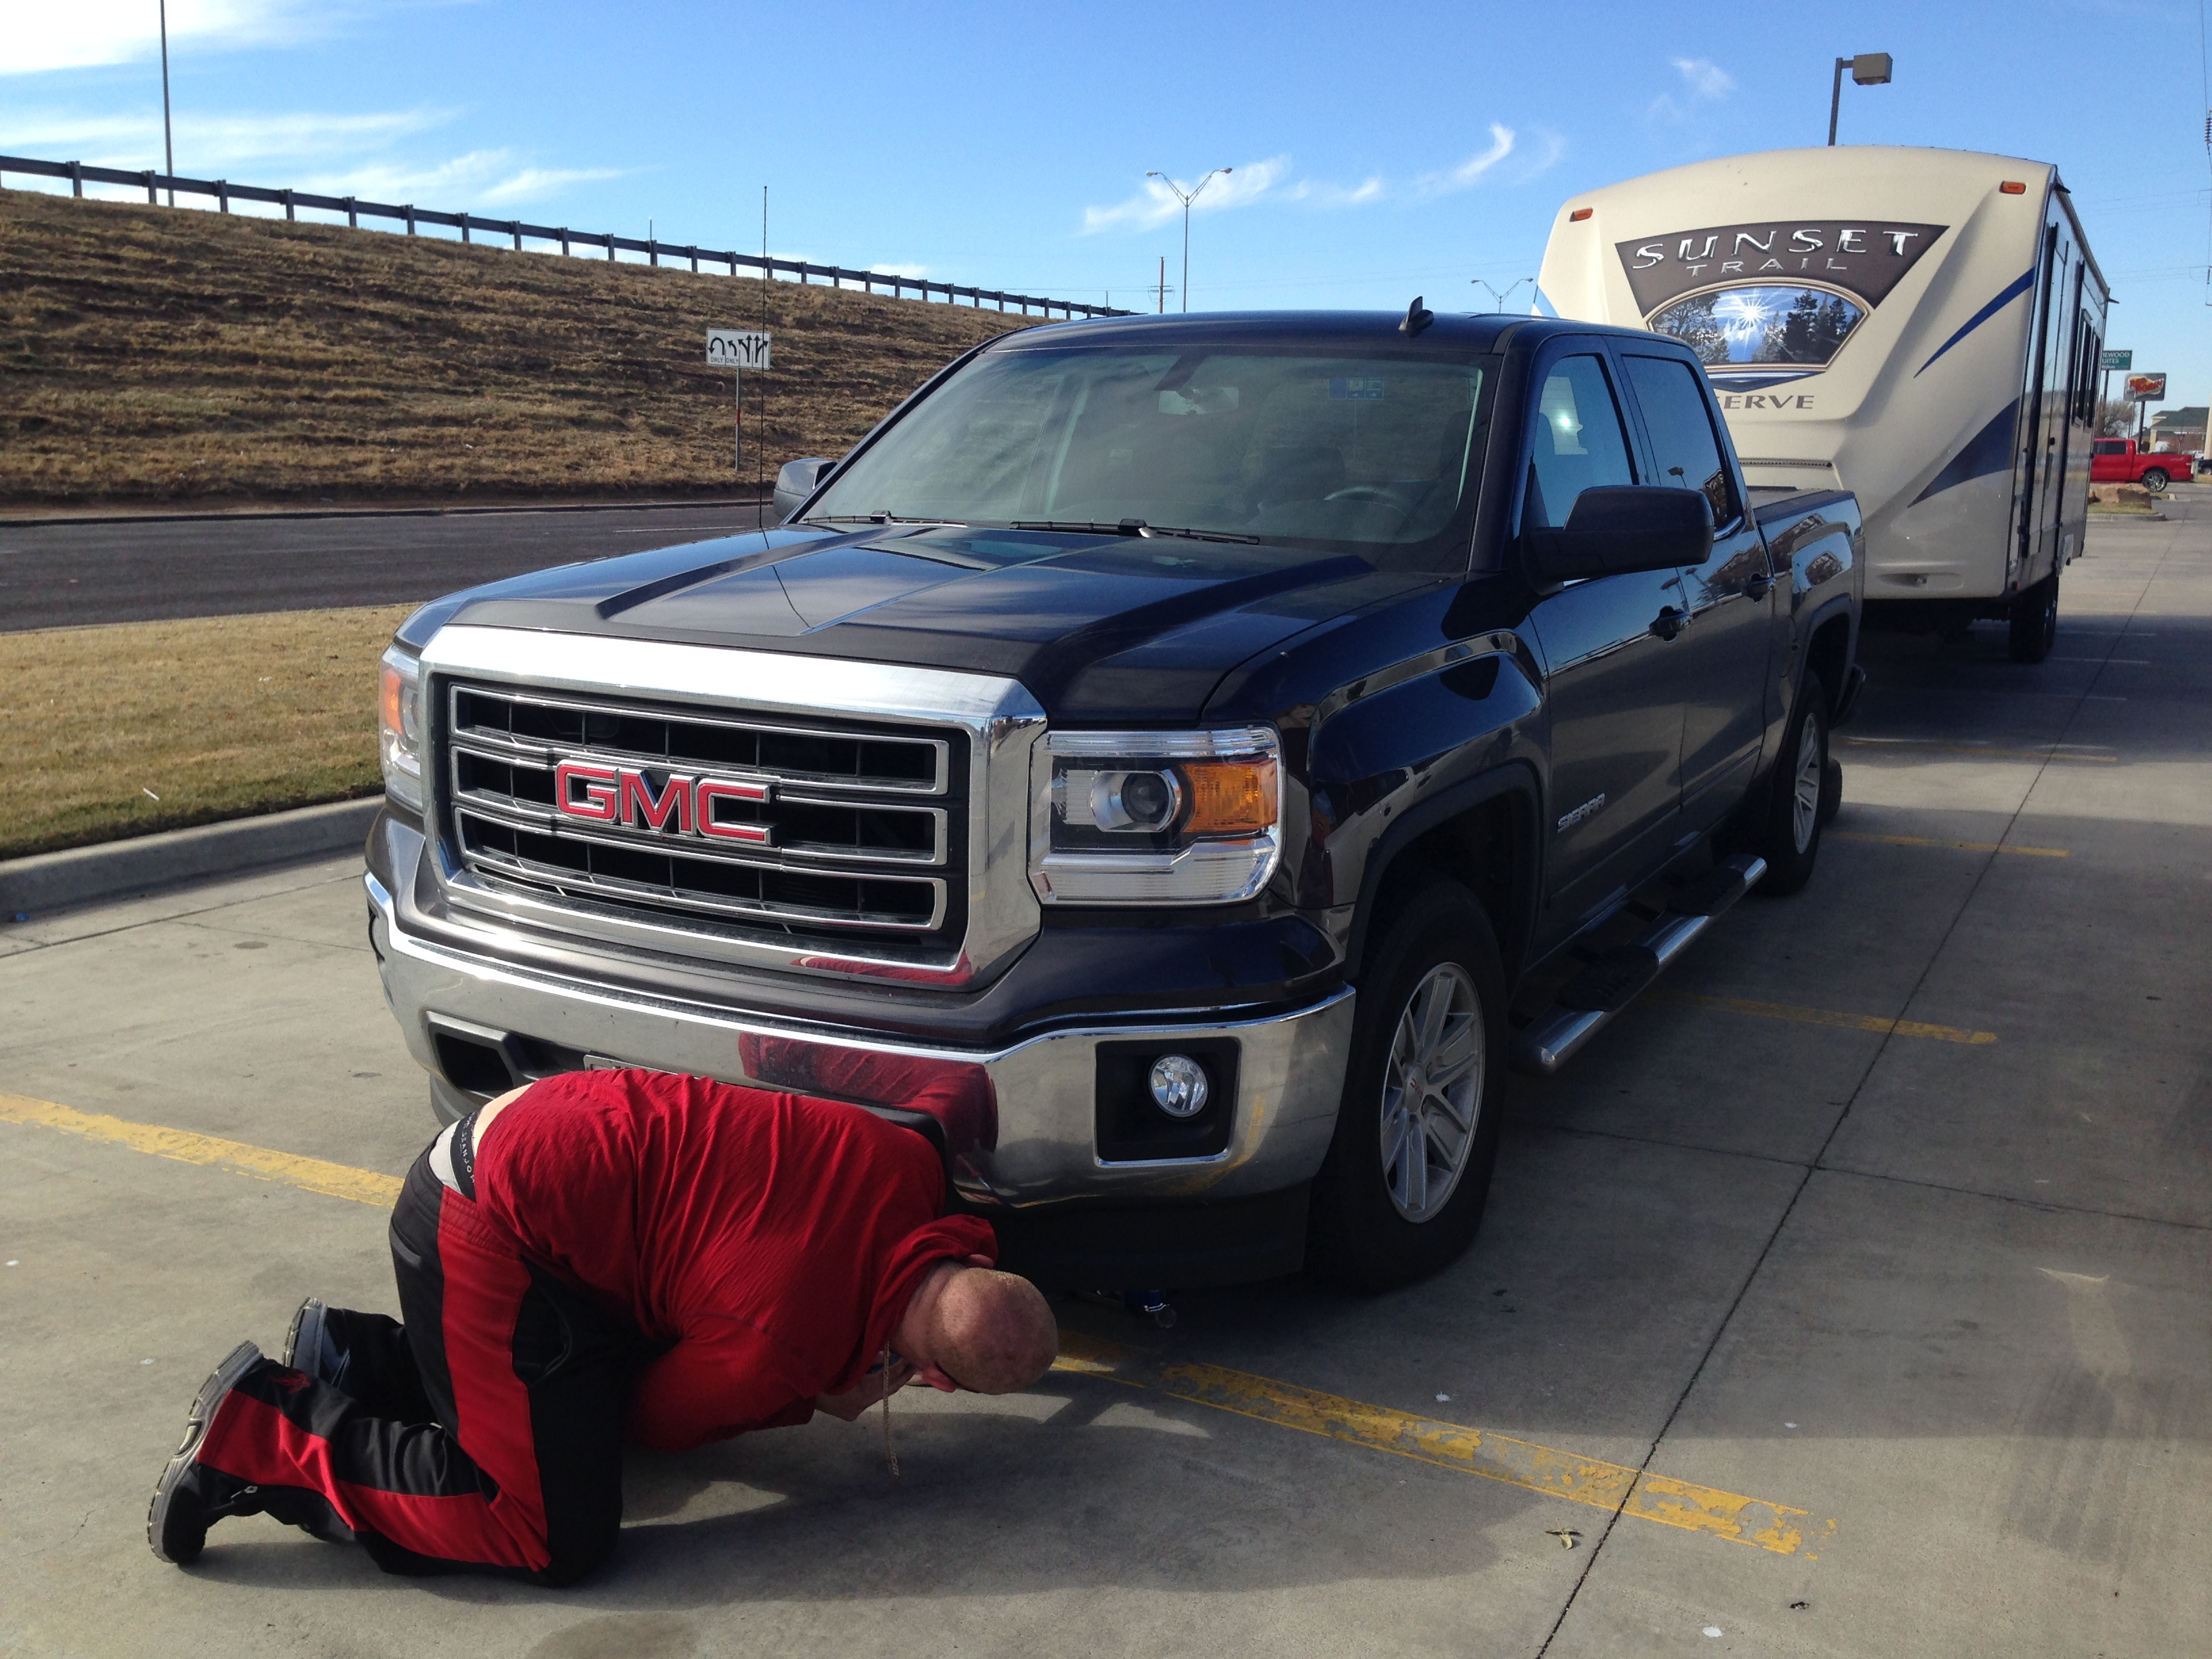 Finally getting our flat tire replaced!